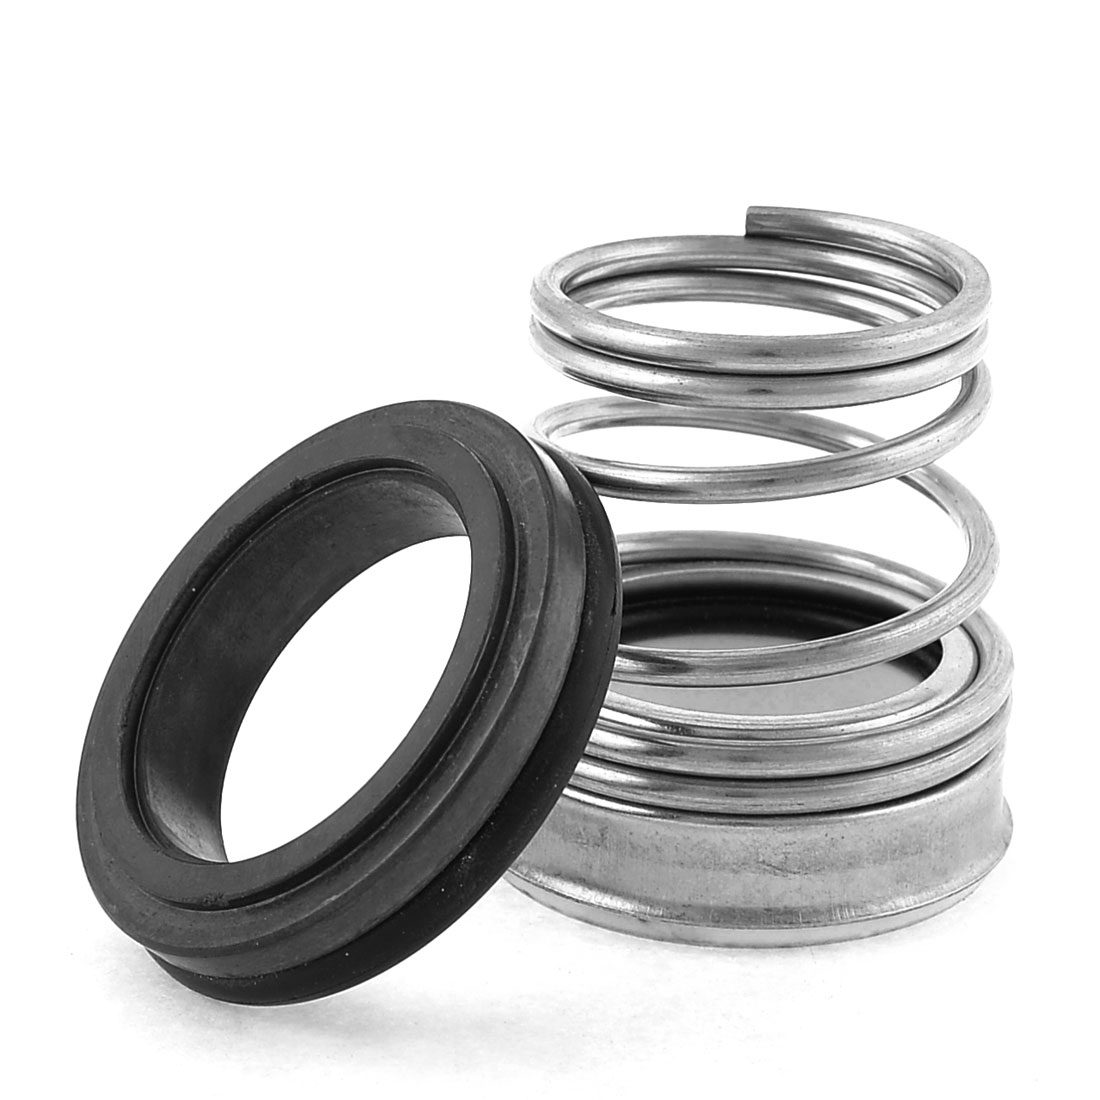 Rubber Bellows Ceramic Rotary Ring 35mm Pump Mechanical Seal